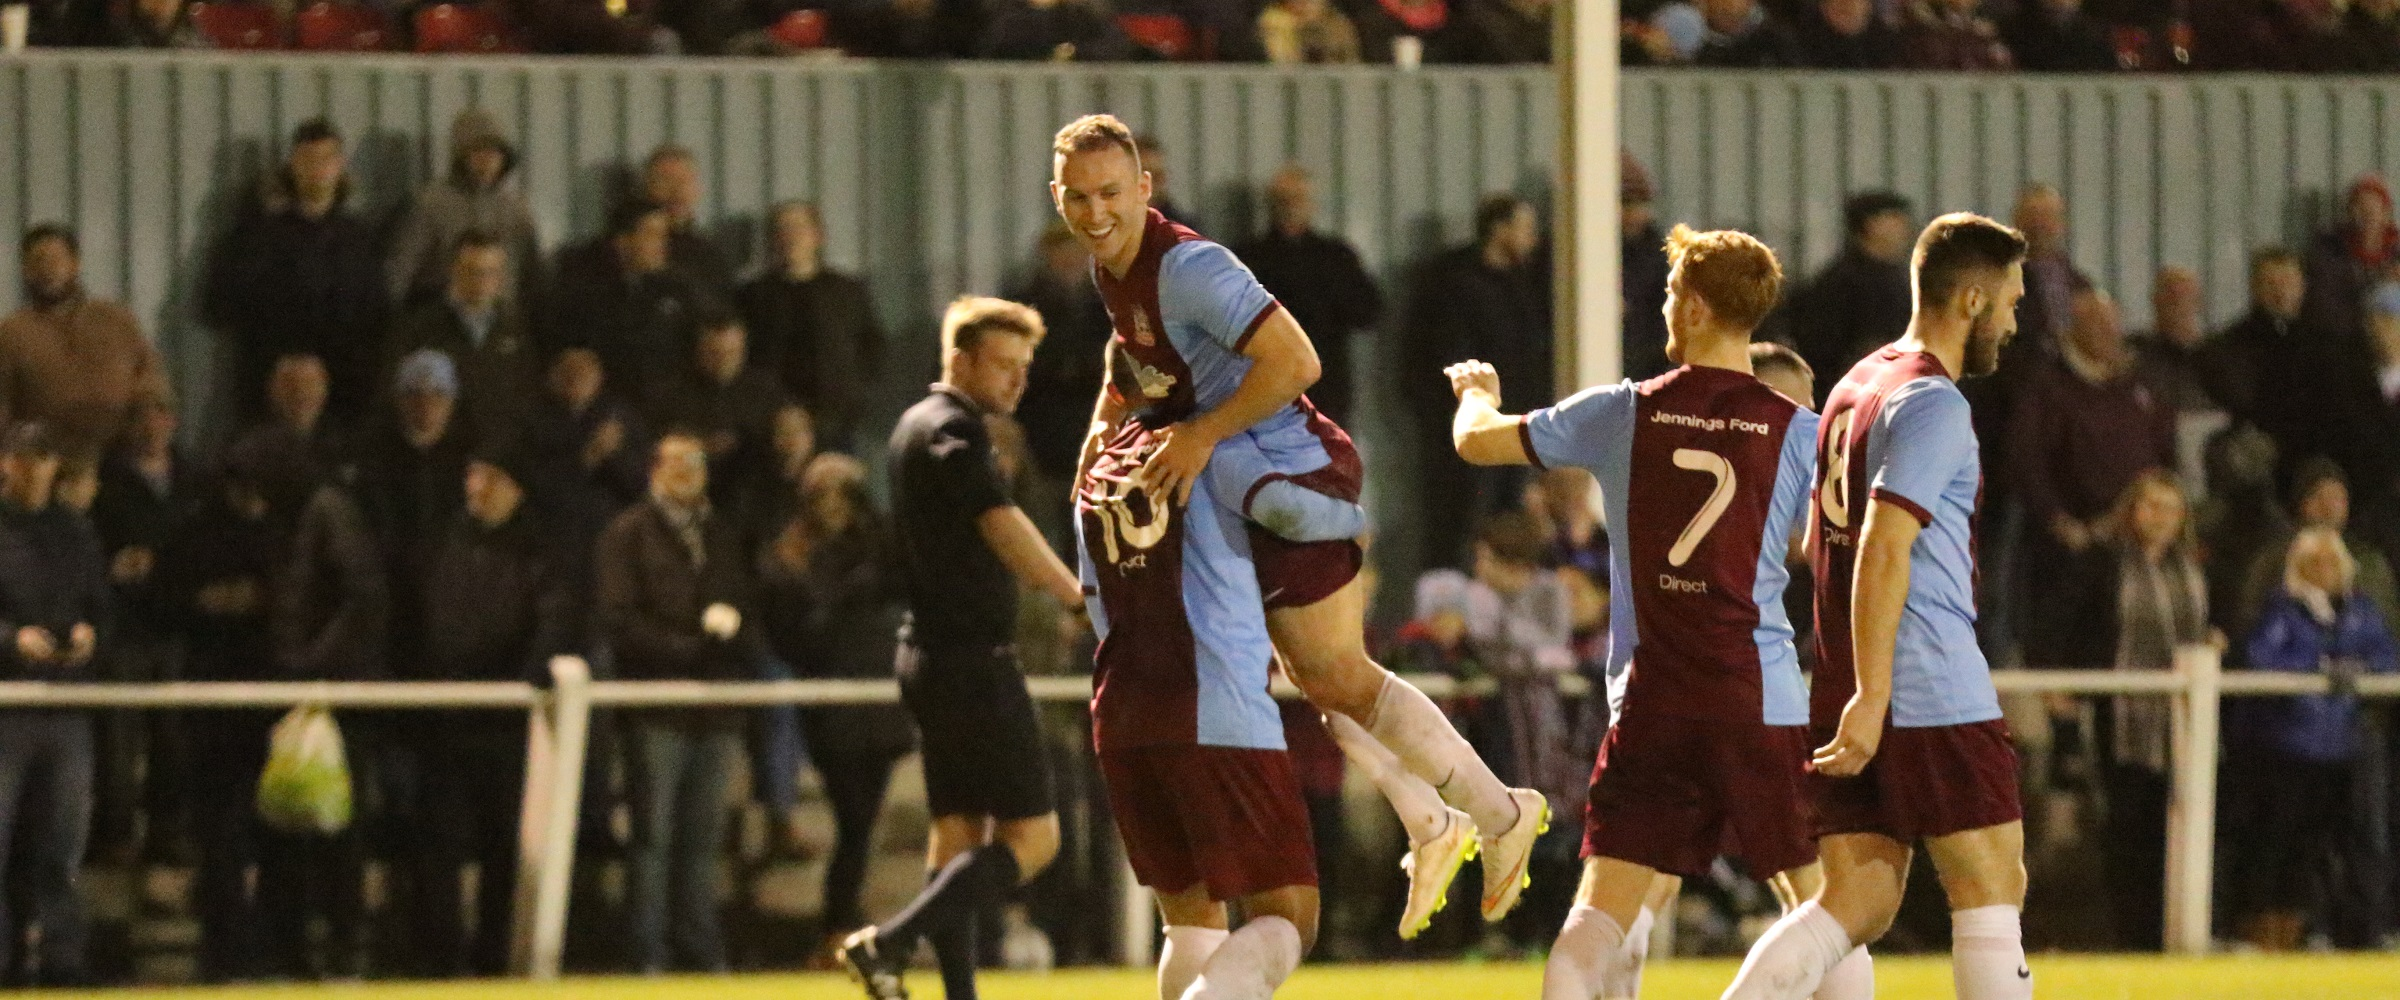 South Shields 4-2 Blyth Town: Four-ley to the rescue for Mariners!